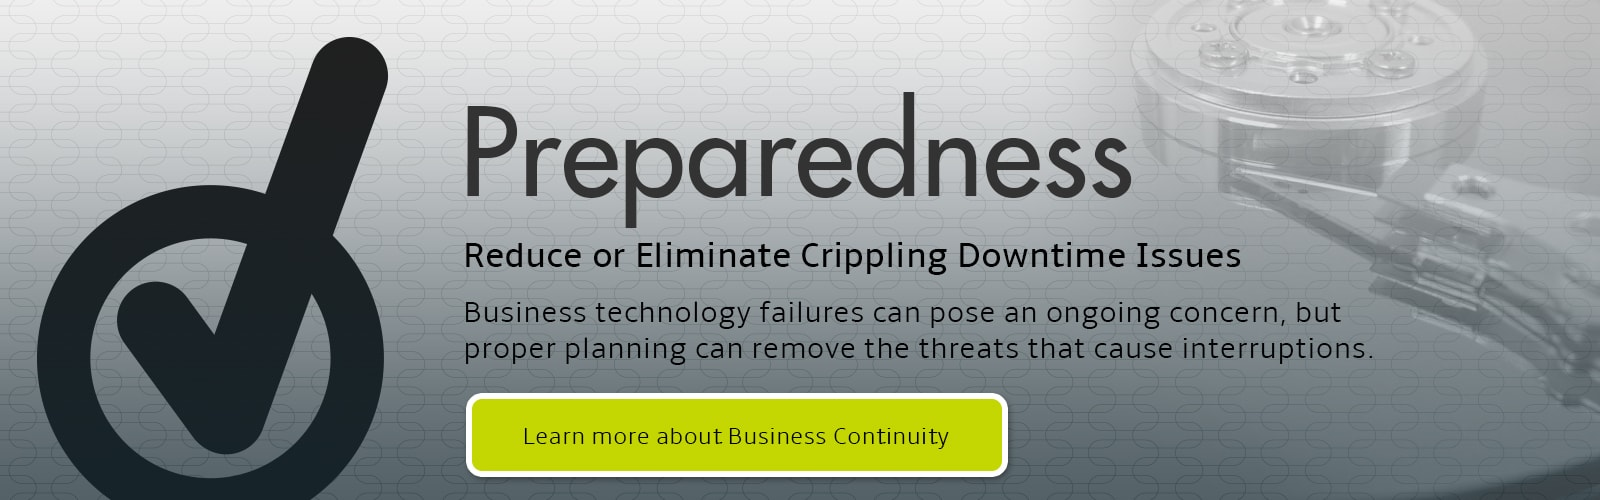 Reduce or eliminate crippling downtime issues